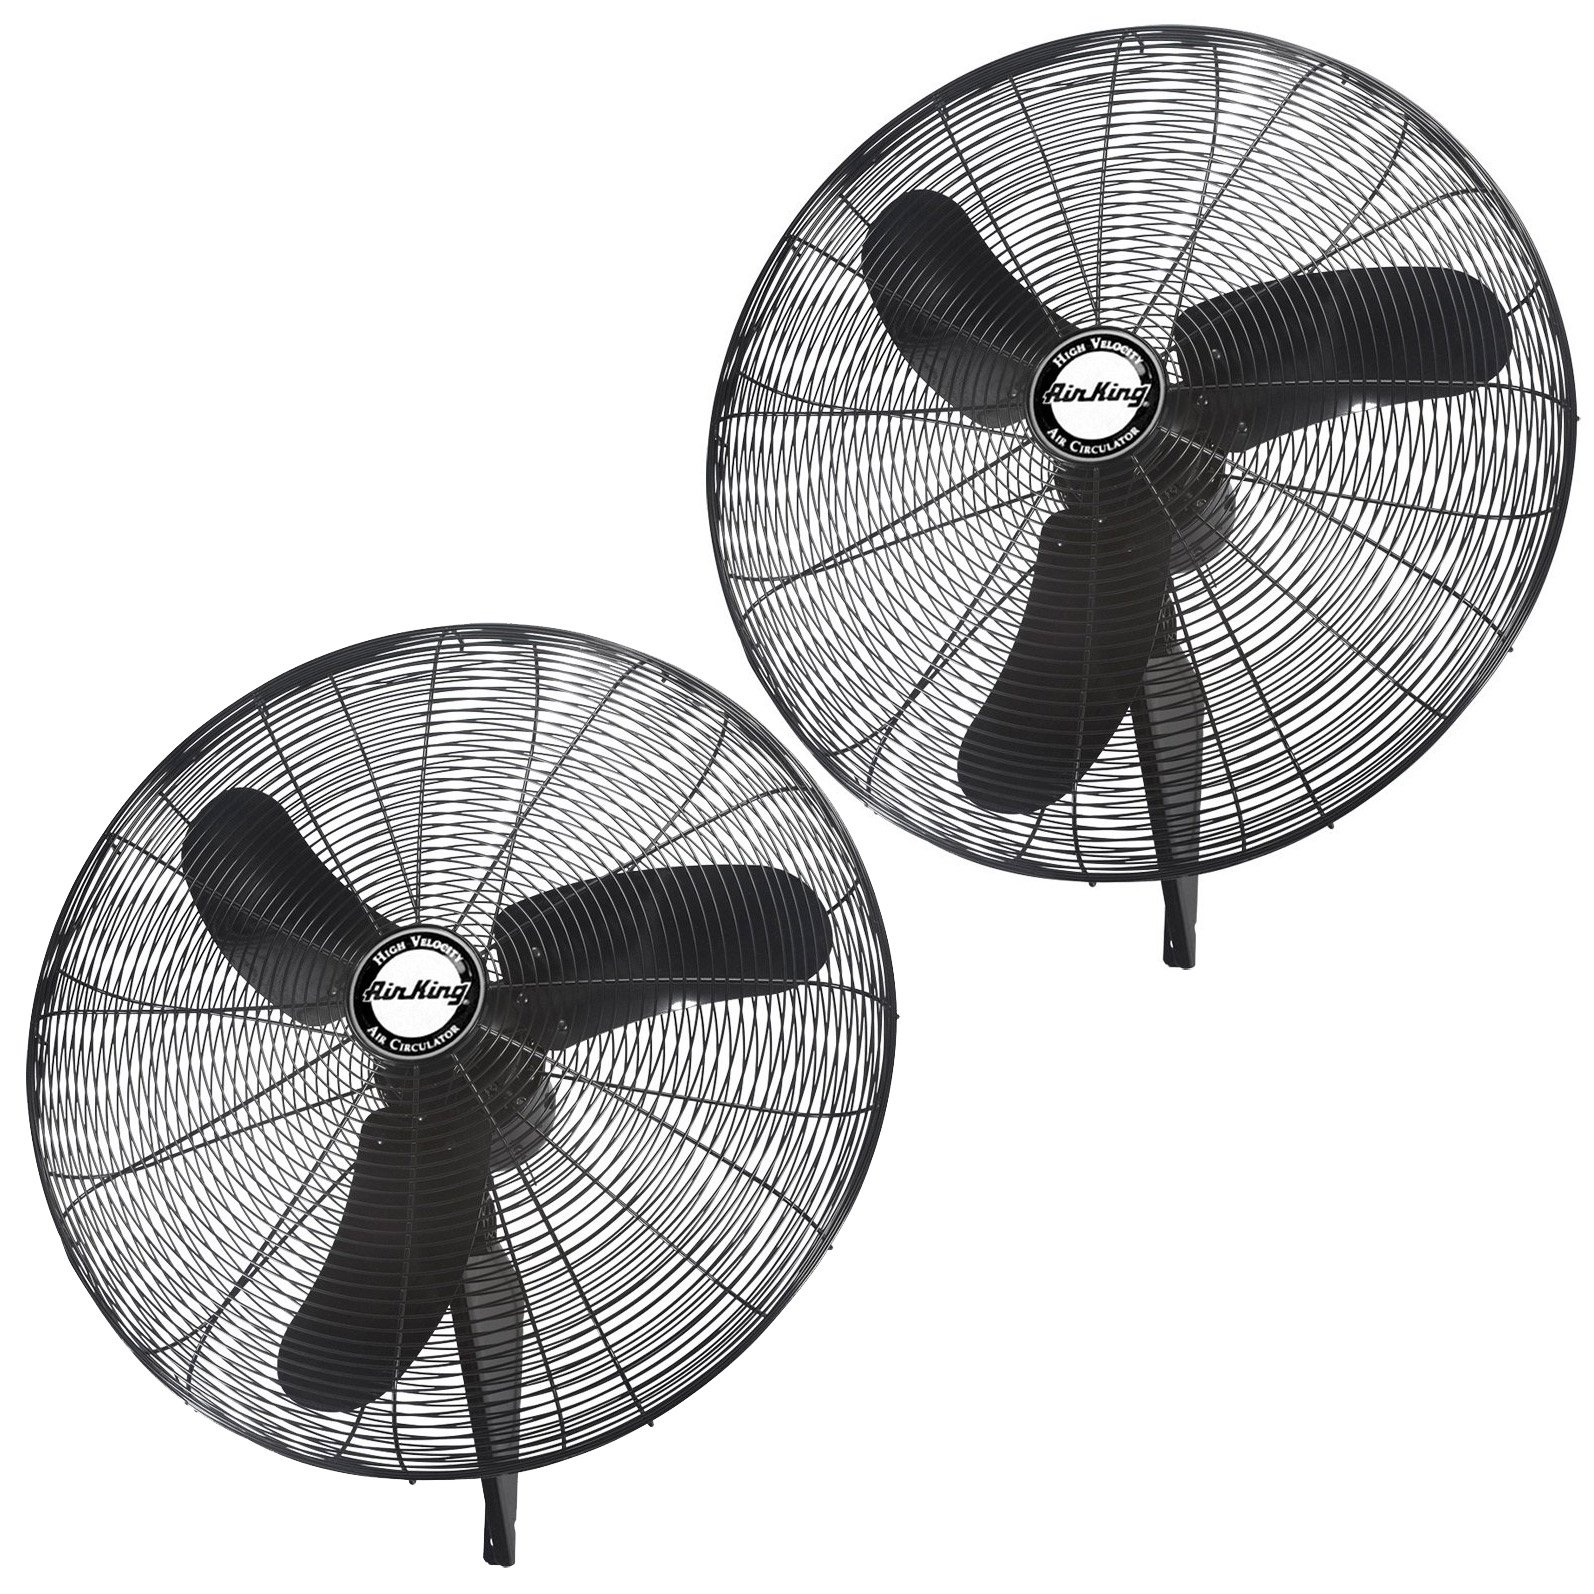 "Air King Industrial Grade 3 Speed 30"" 1/3 HP Oscillating Wall Mount Fan (2 Pack)"